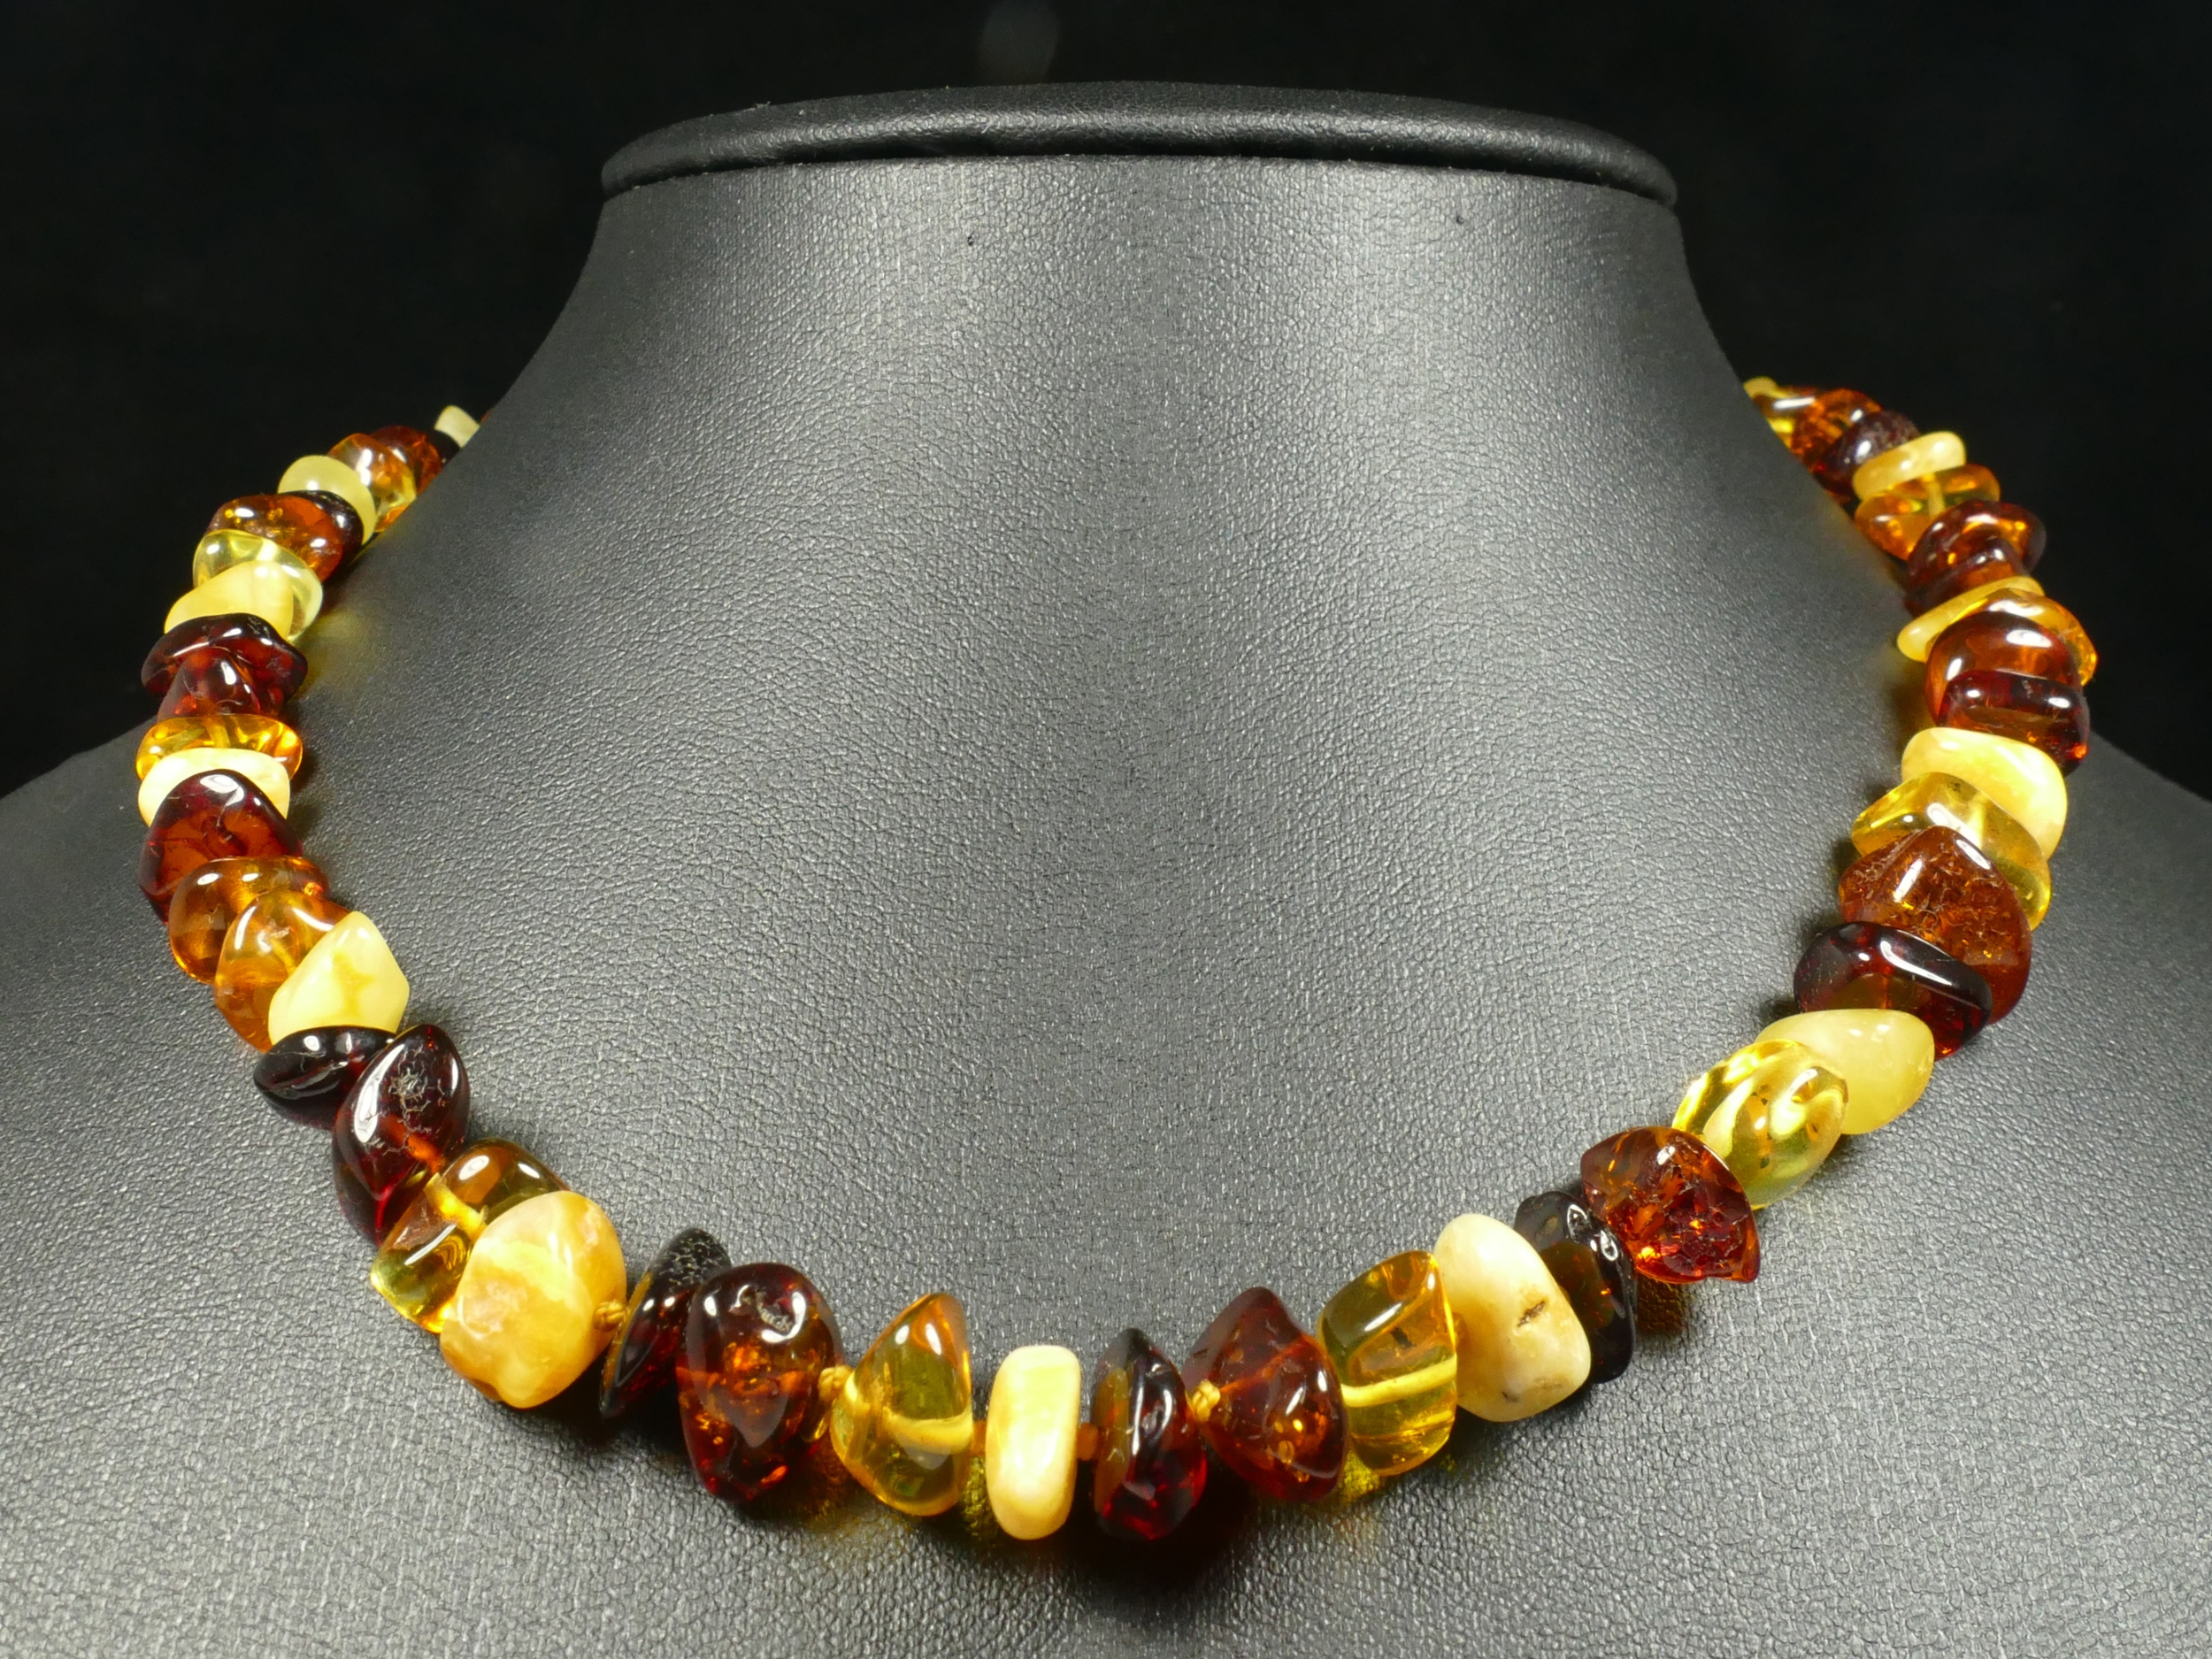 Collier d\'Ambre naturel natif en perle roulé de la Mer Baltique 44cm orange jaune rouge (#PF57)